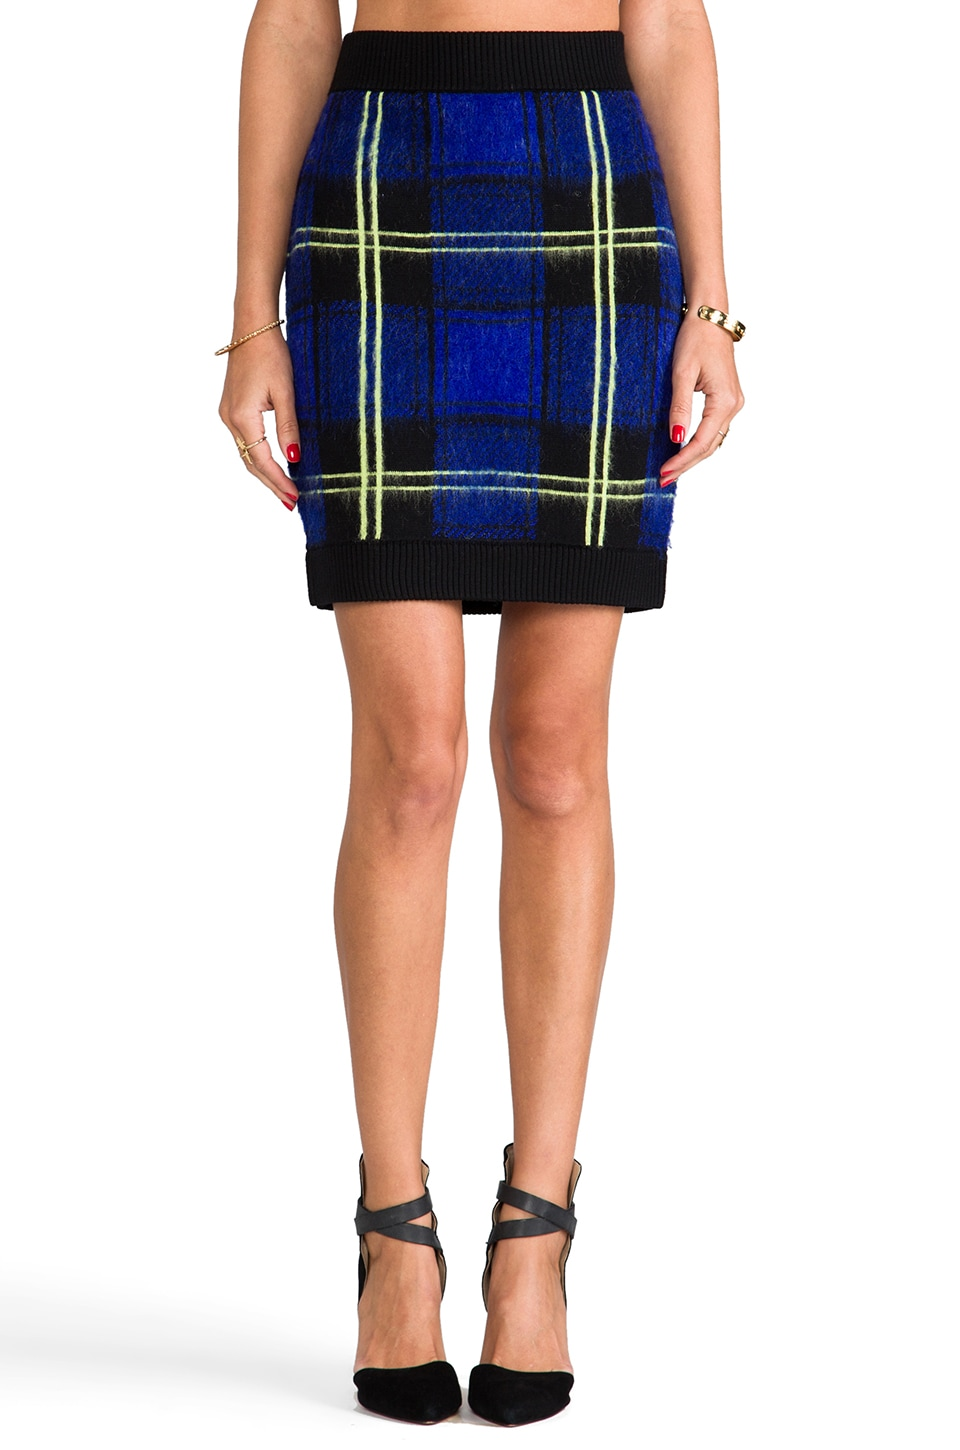 MILLY RUNWAY Knit Washed Plaid Jacquard Mini Skirt in Violet Multi